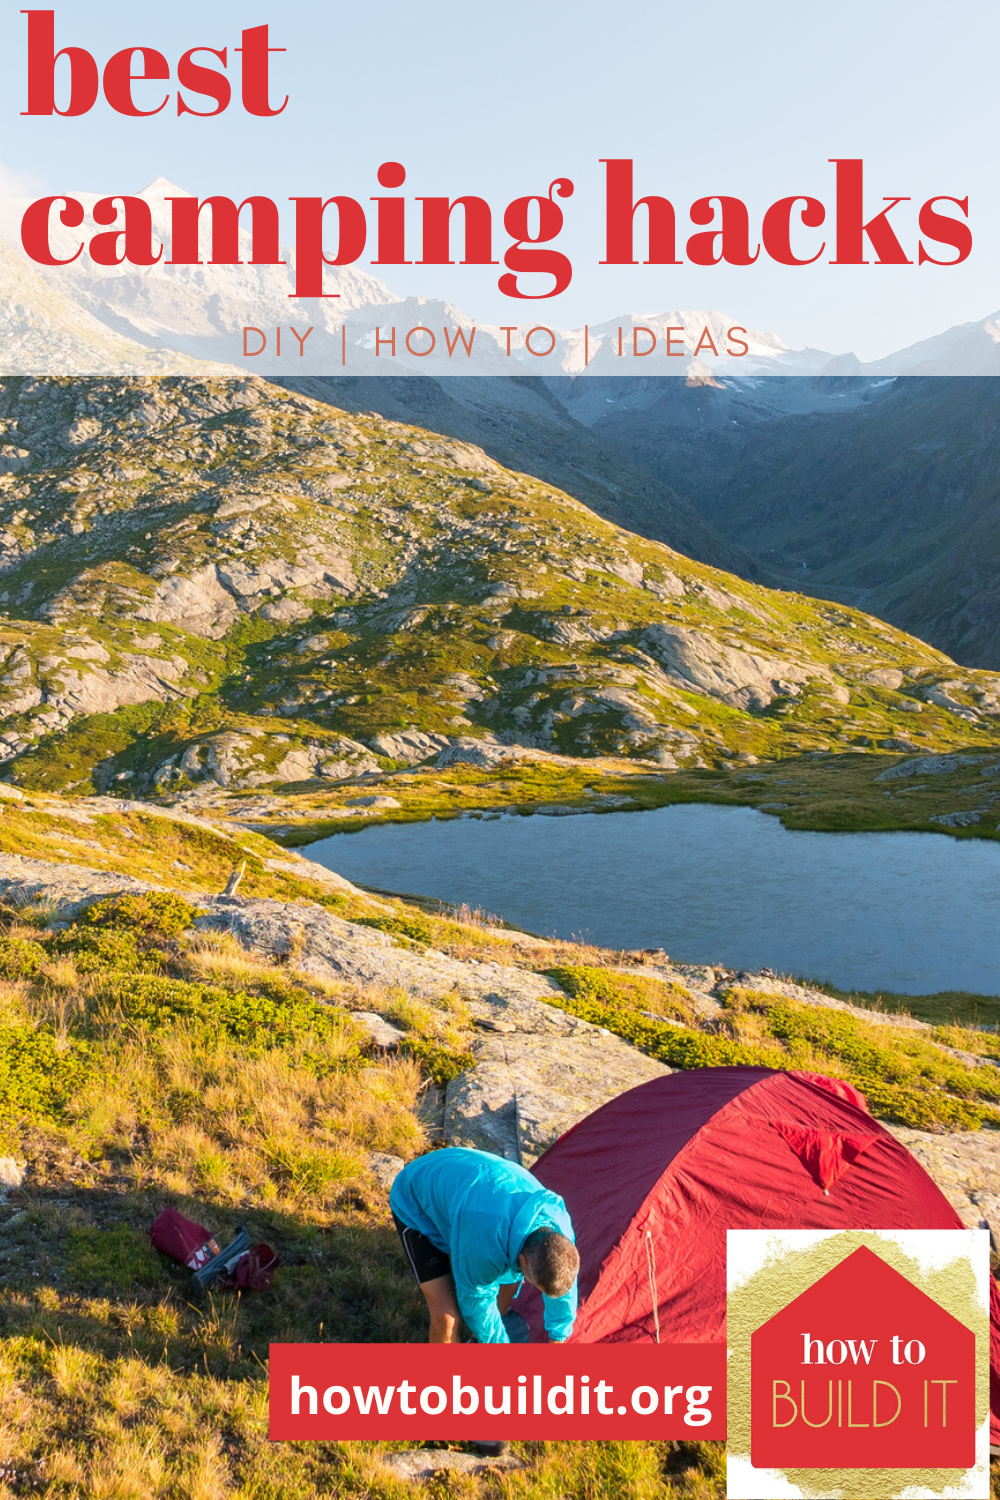 I think more people would camp if they knew a few hacks that made the difficult things easier. Like how to get a good night's sleep on rock hard ground. How to carry your food, etc. If you want to do more camping, and need a little inspo, keep reading. These tips and tricks make being in the outdoors fun. #campinghacks #tipsandtricksforcamping #outdooractivities